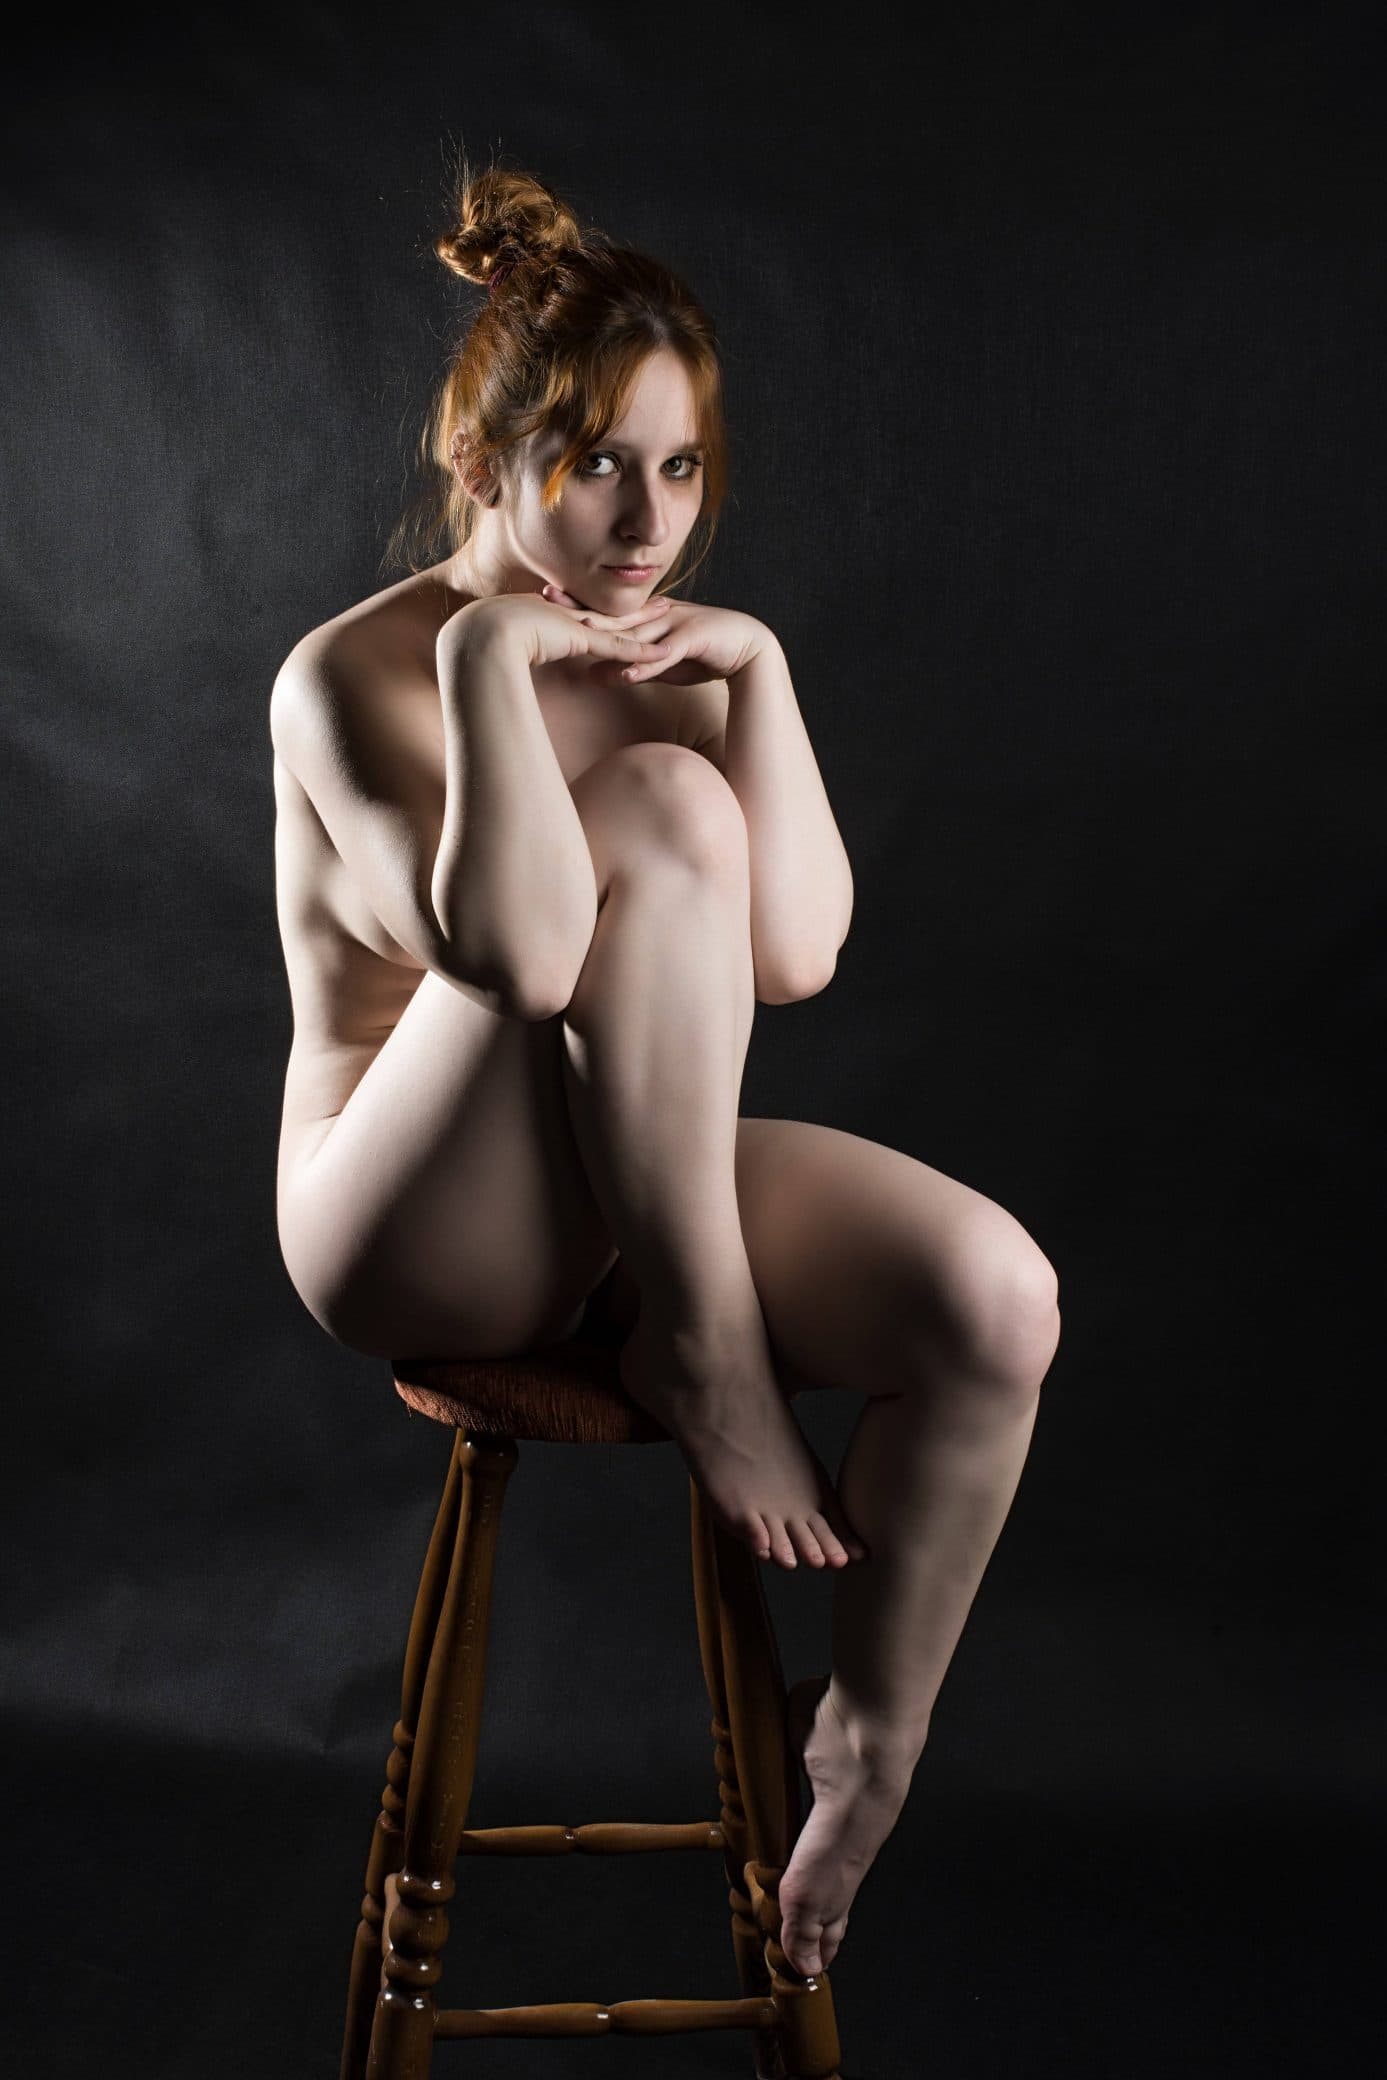 Beautiful redhead woman Fenyvesi Luca in a artistic boudoir photoshoot sitting on a wooden stool with her bare leg up showing her bare foot